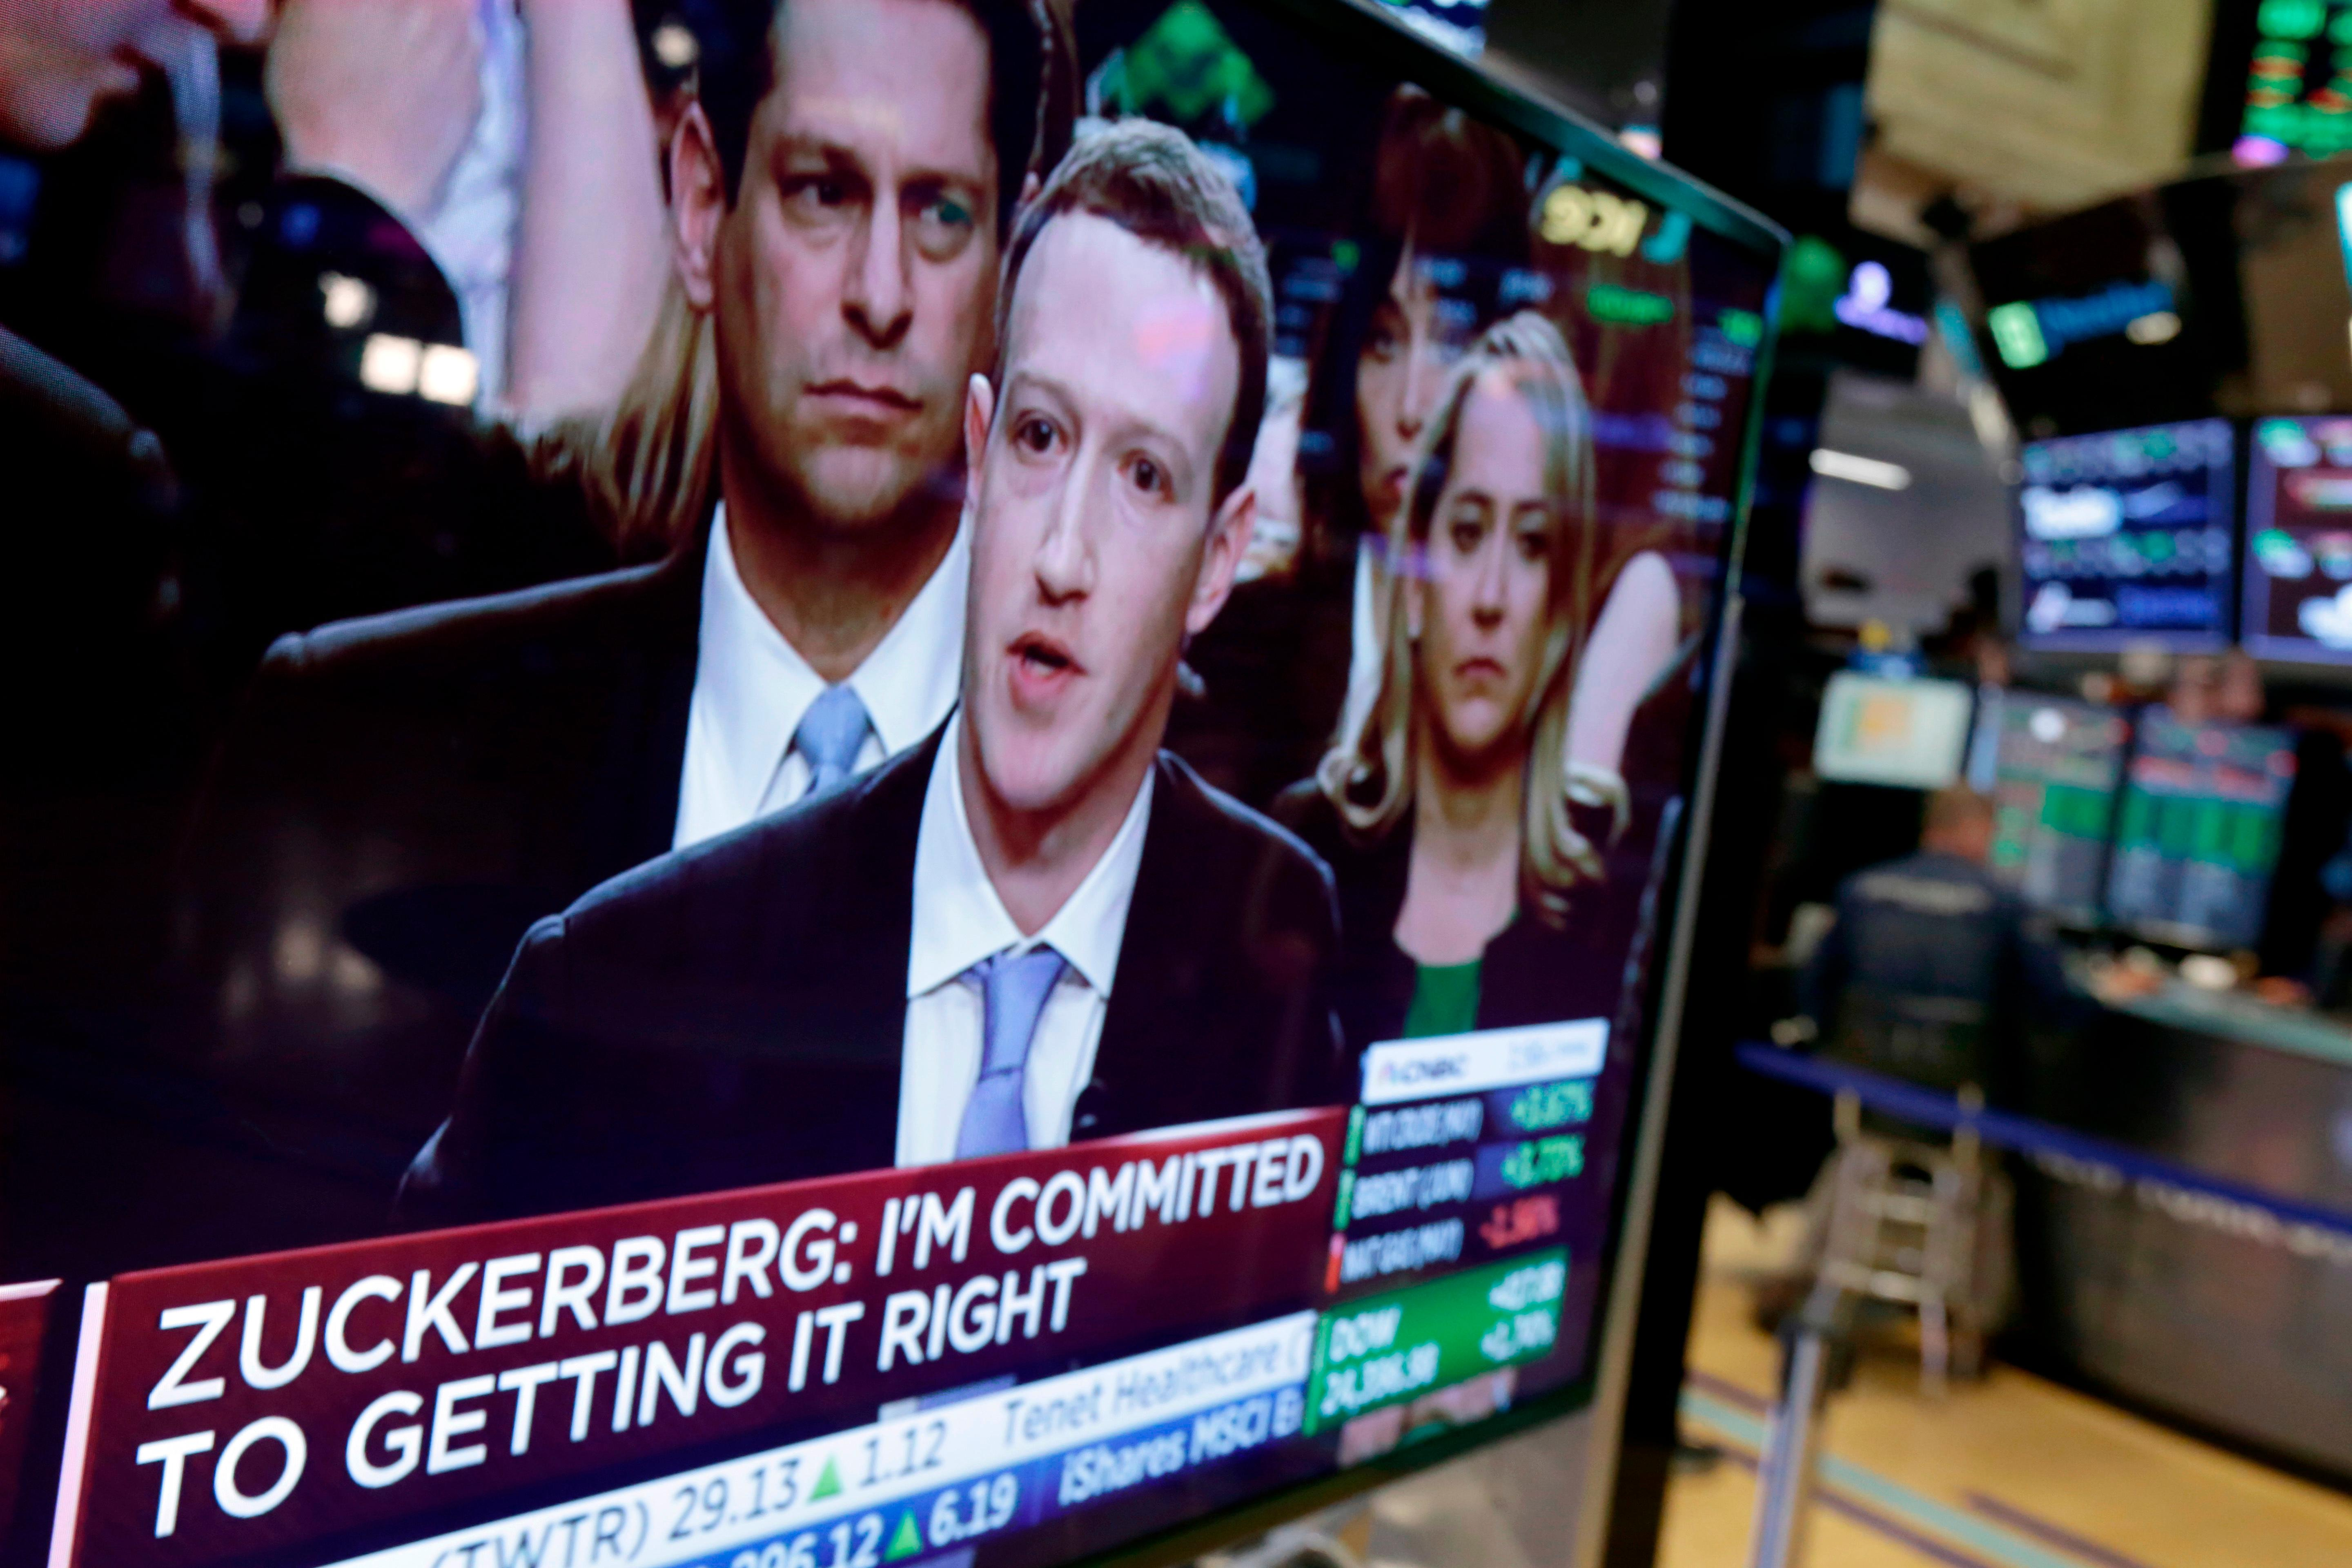 FILE - In this April 10, 2018 file photo, Facebook CEO Mark Zuckerberg appears on a television screen on the floor of the New York Stock Exchange as he testifies in the Senate in Washington.  Shares in the social media giant are trading around $185 early Friday, May 11, returning to the levels last seen eight weeks ago, when news broke that the company failed to prevent major privacy breaches during the run-up to the 2016 presidential election in the U.S. (AP Photo/Richard Drew, File)